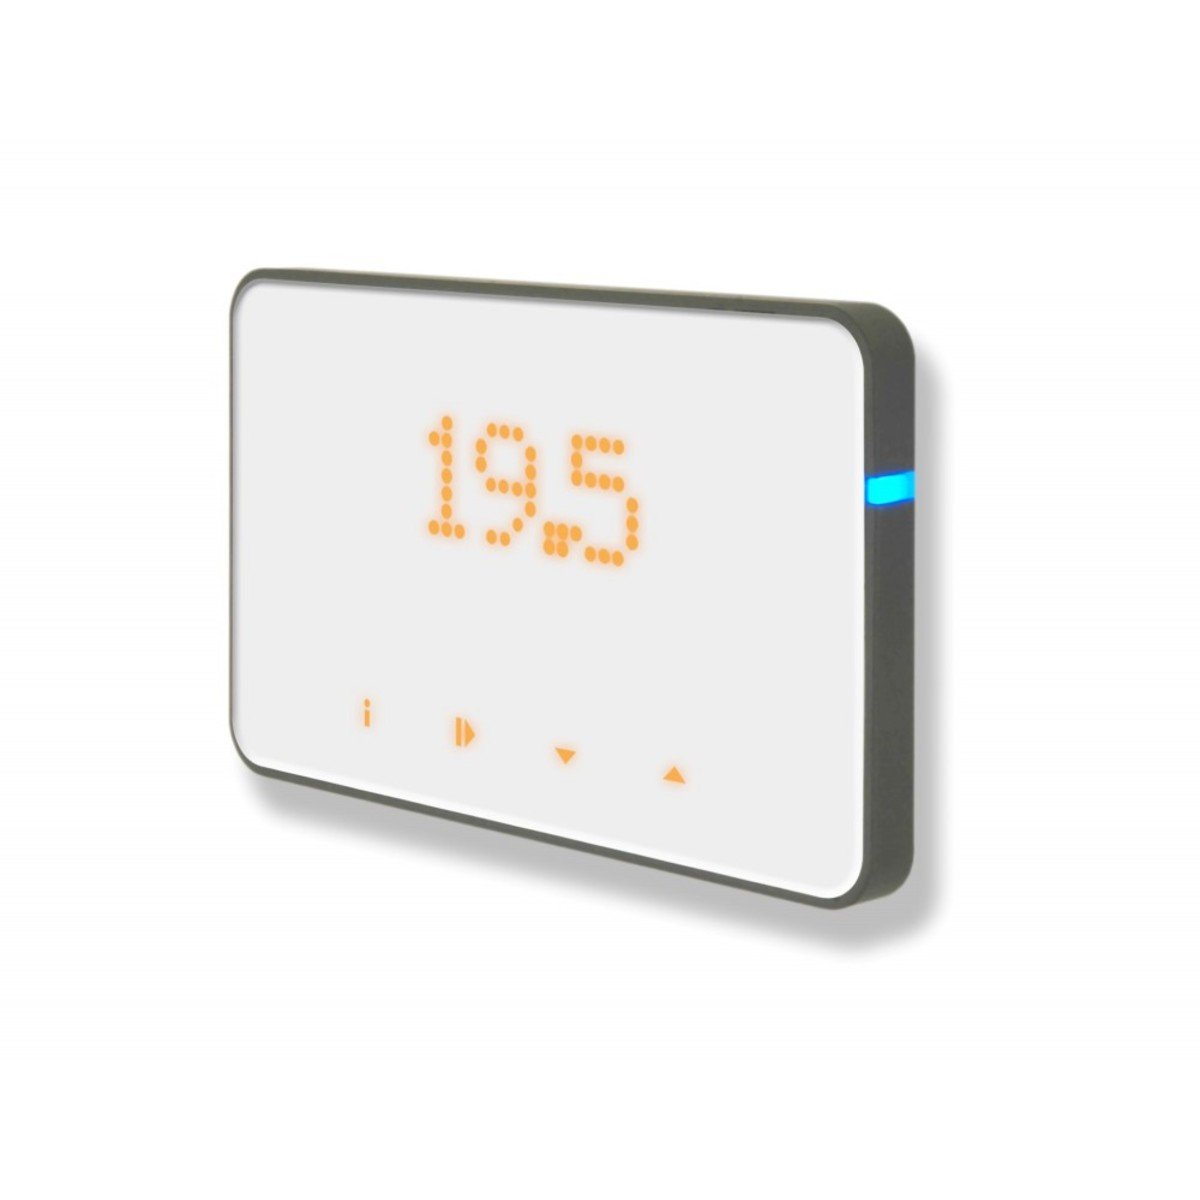 Slimme Thermostaat Wifi Thermosmart Advanced Slimme Thermostaat Met Wifi Wit Thermosmart